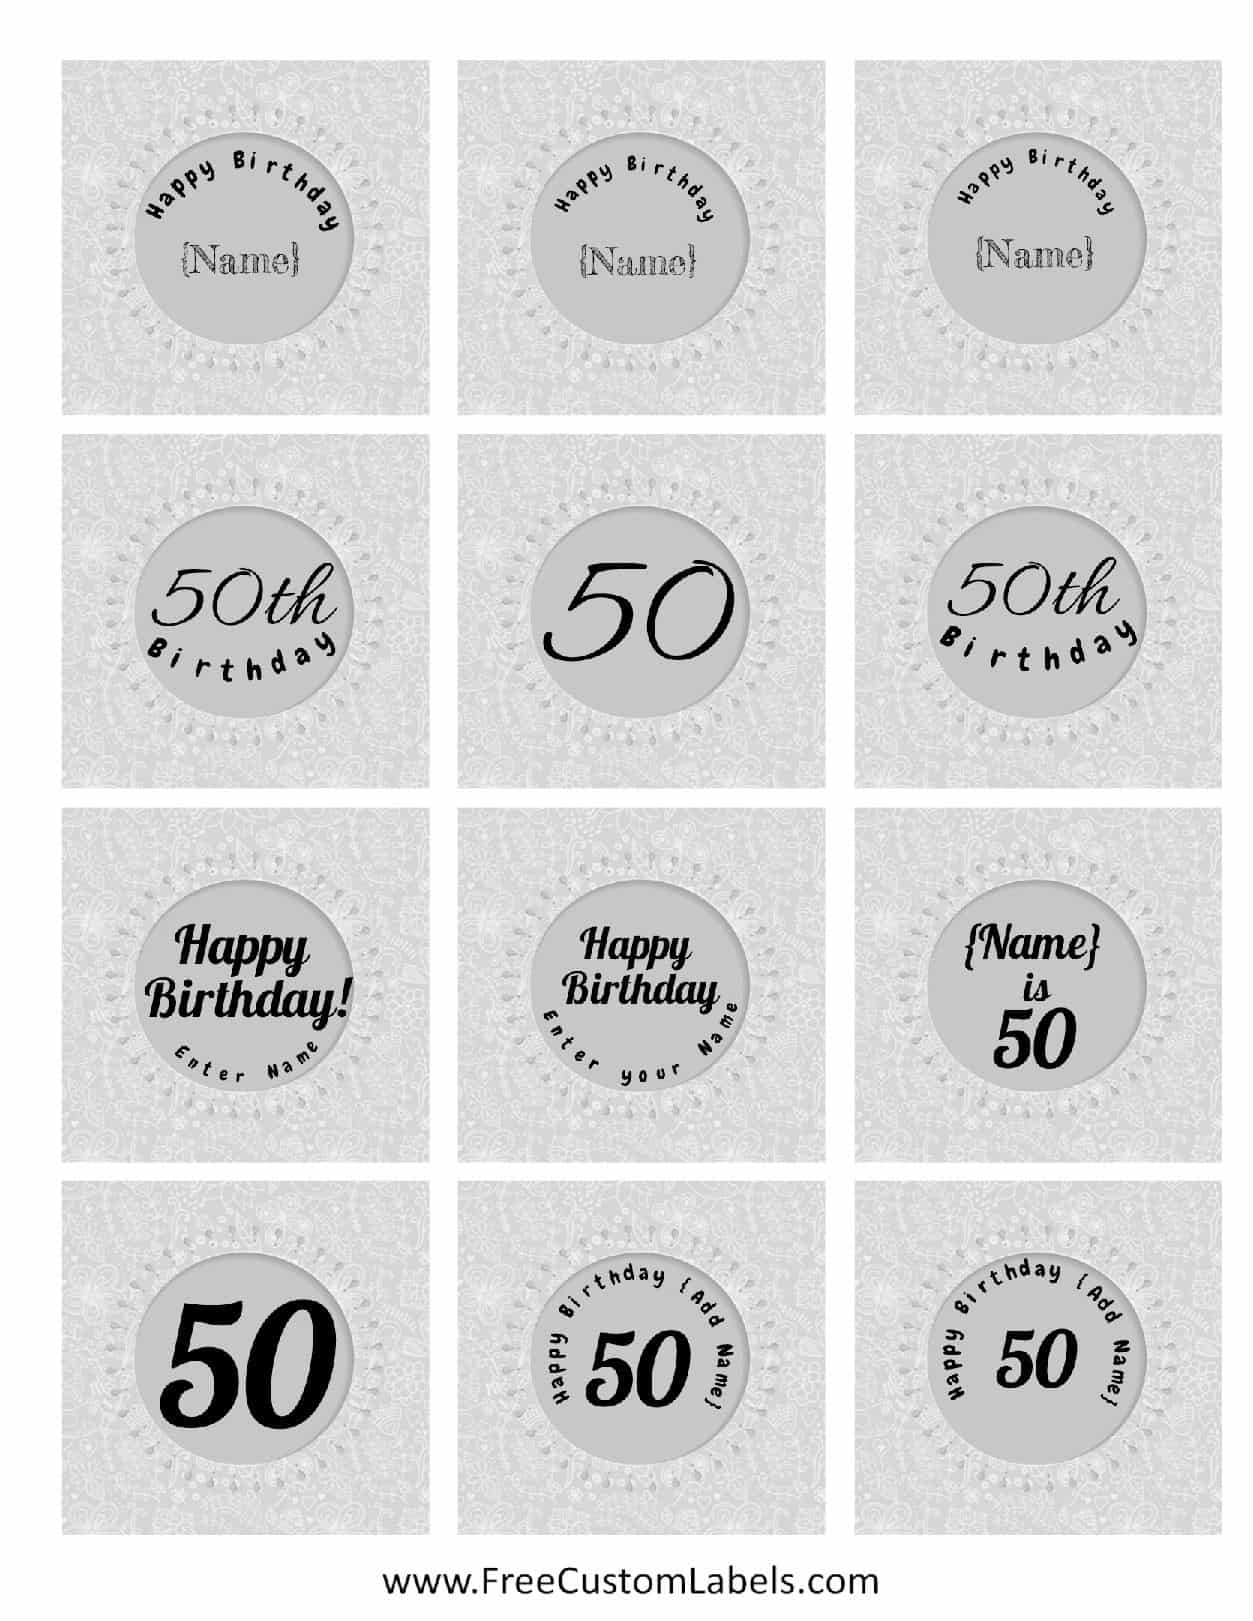 Printables For 50th Birthday Label Maker